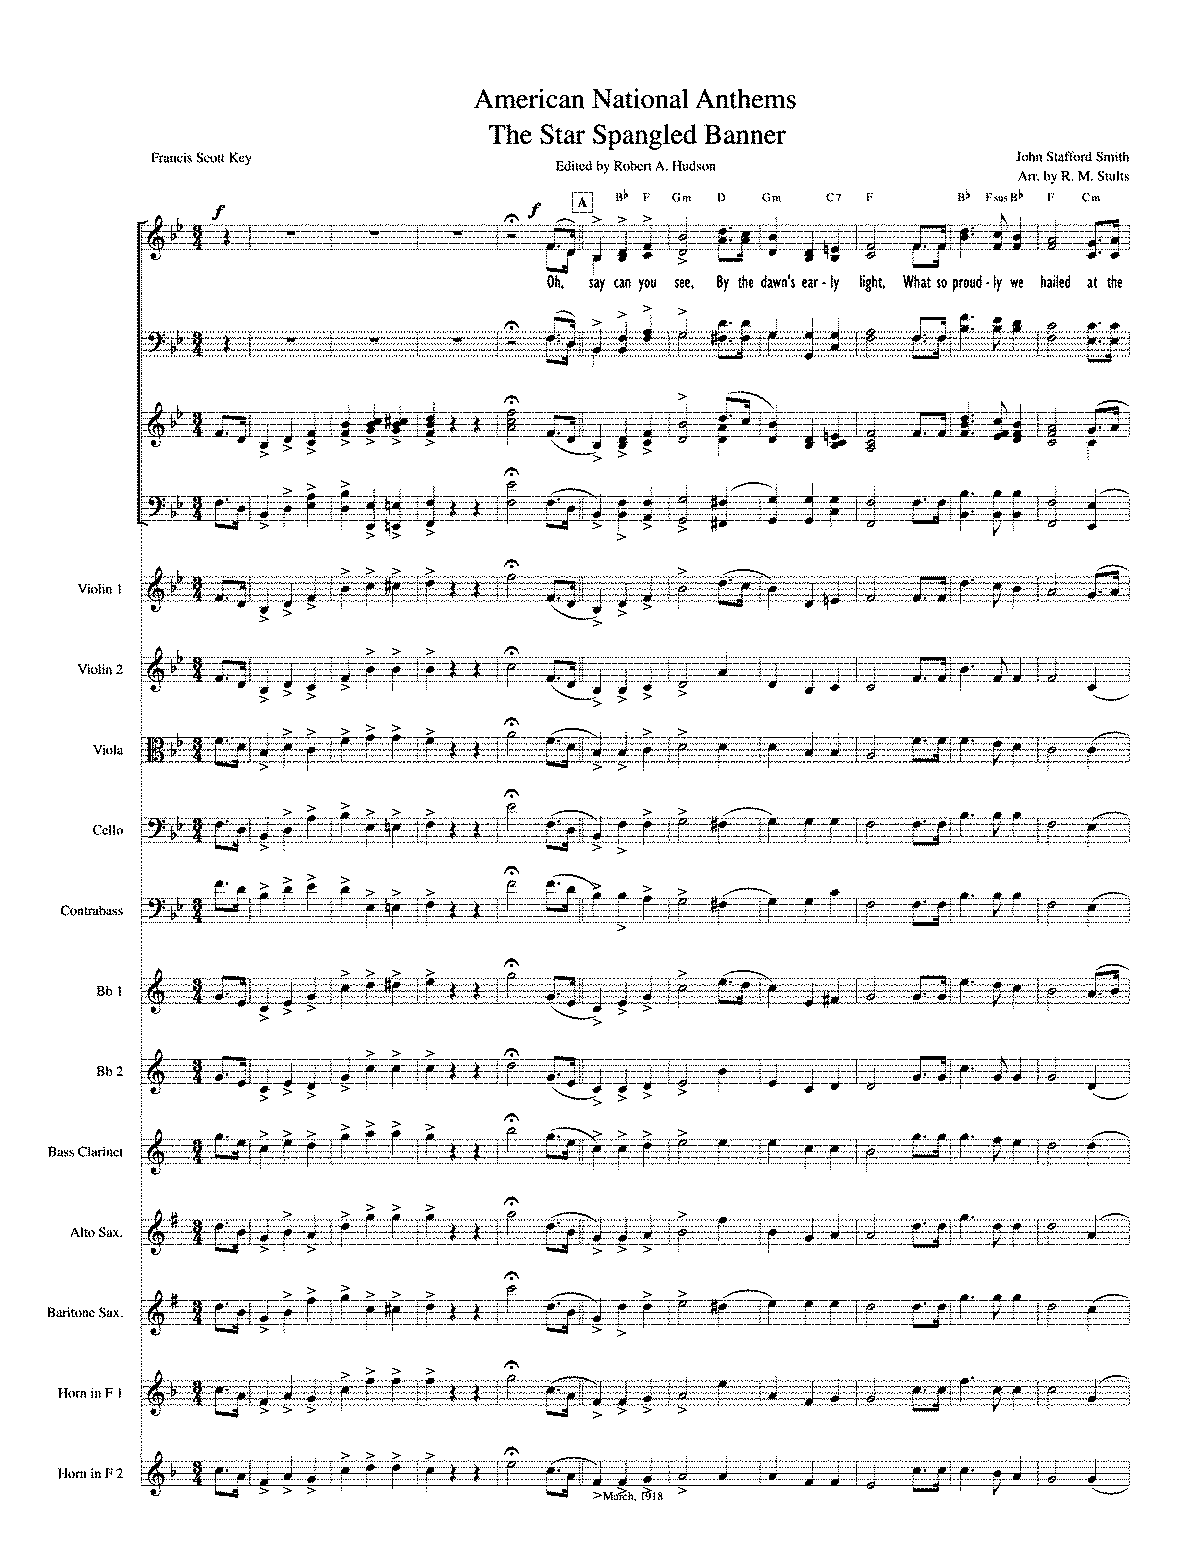 PMLP208661-The Star Spangled Banner Stults - Conductors Score.pdf